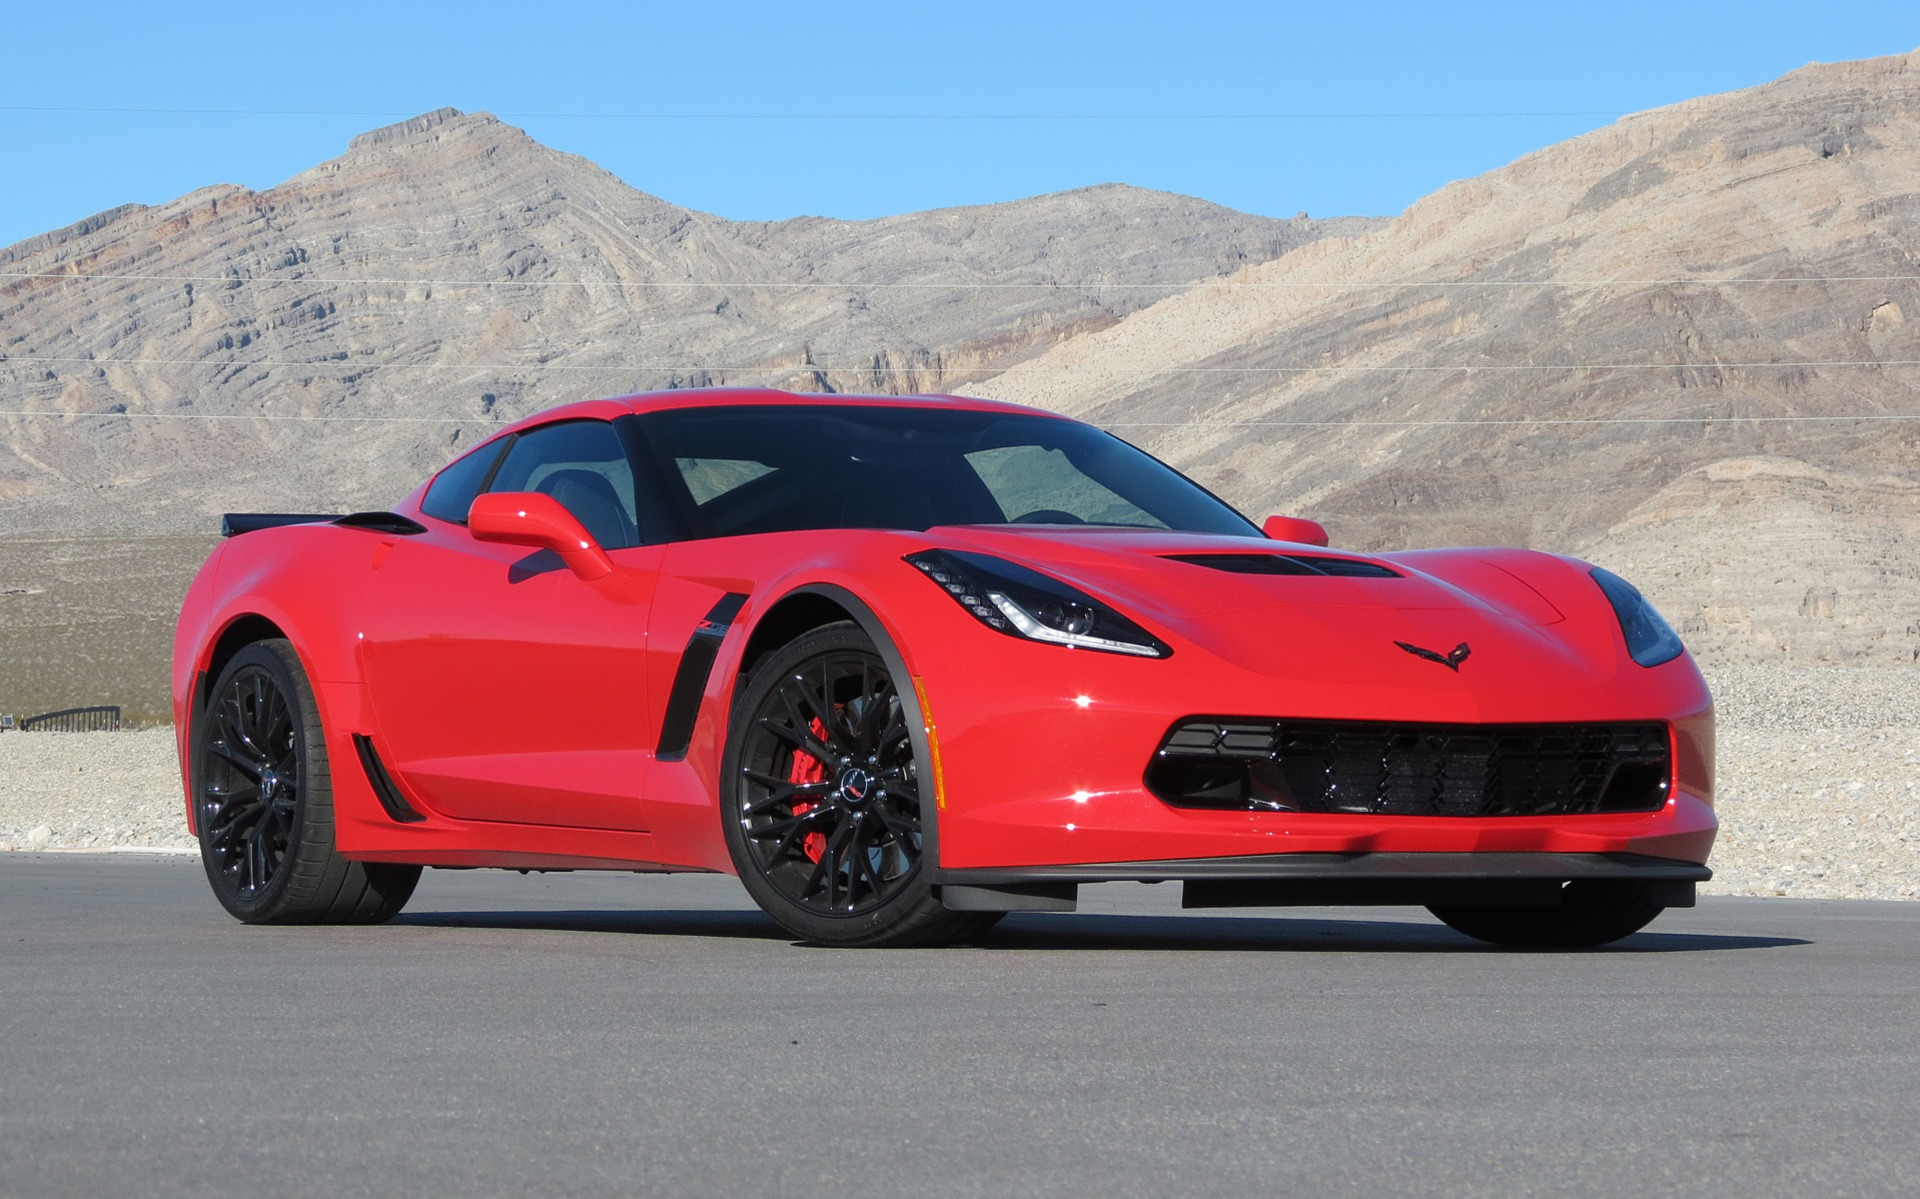 2015 chevrolet corvette z06 picture gallery photo 29 35 the car. Cars Review. Best American Auto & Cars Review